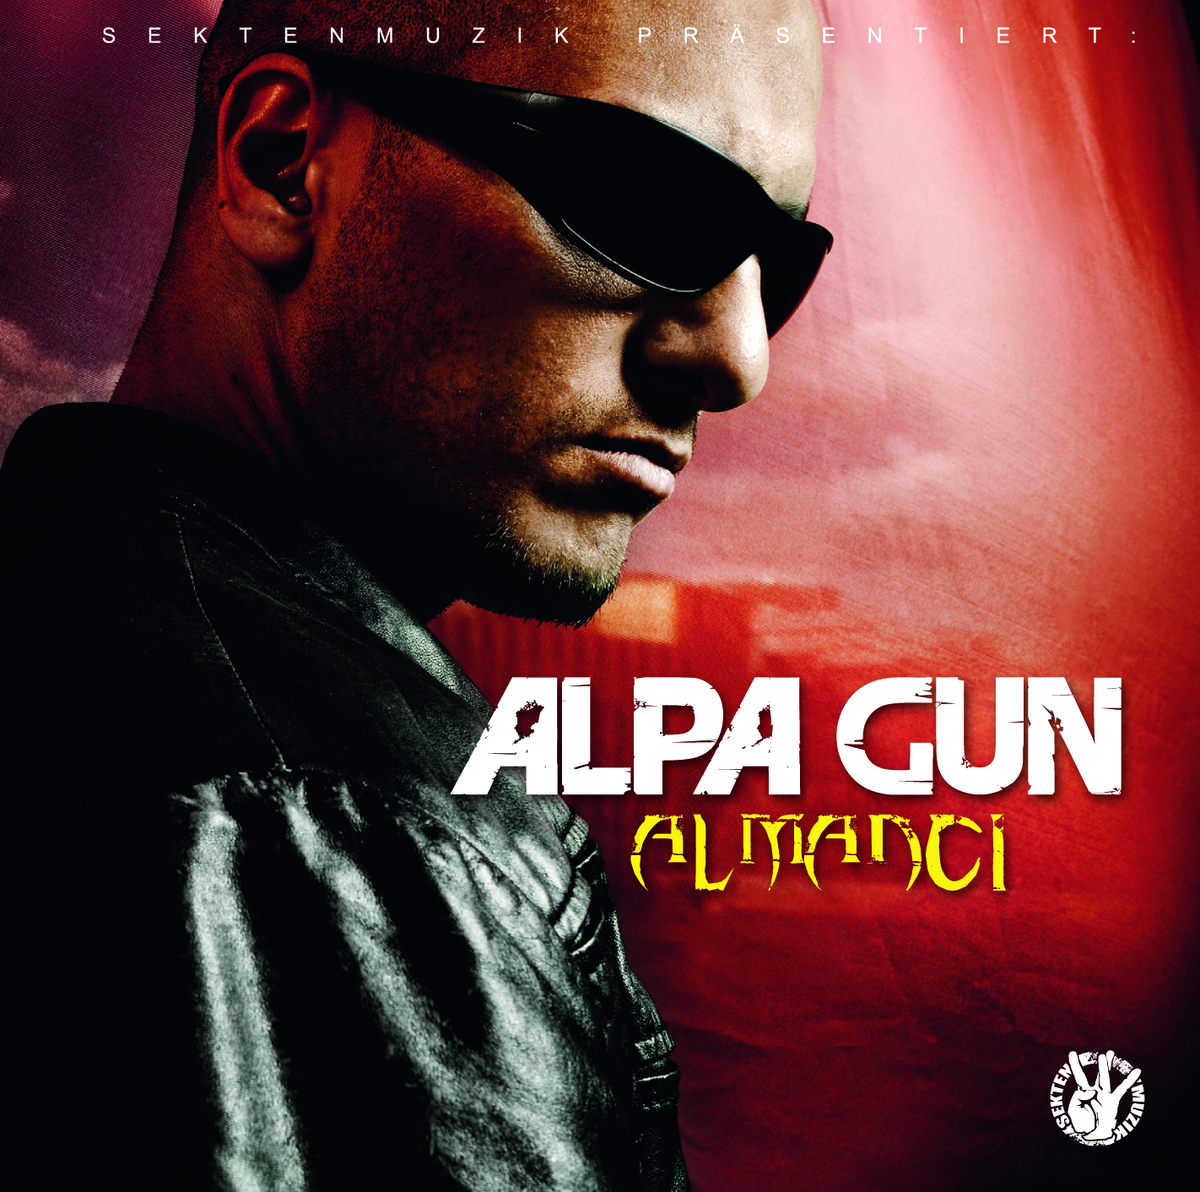 Cover Album of Alpa Gun - Almanci (2010)